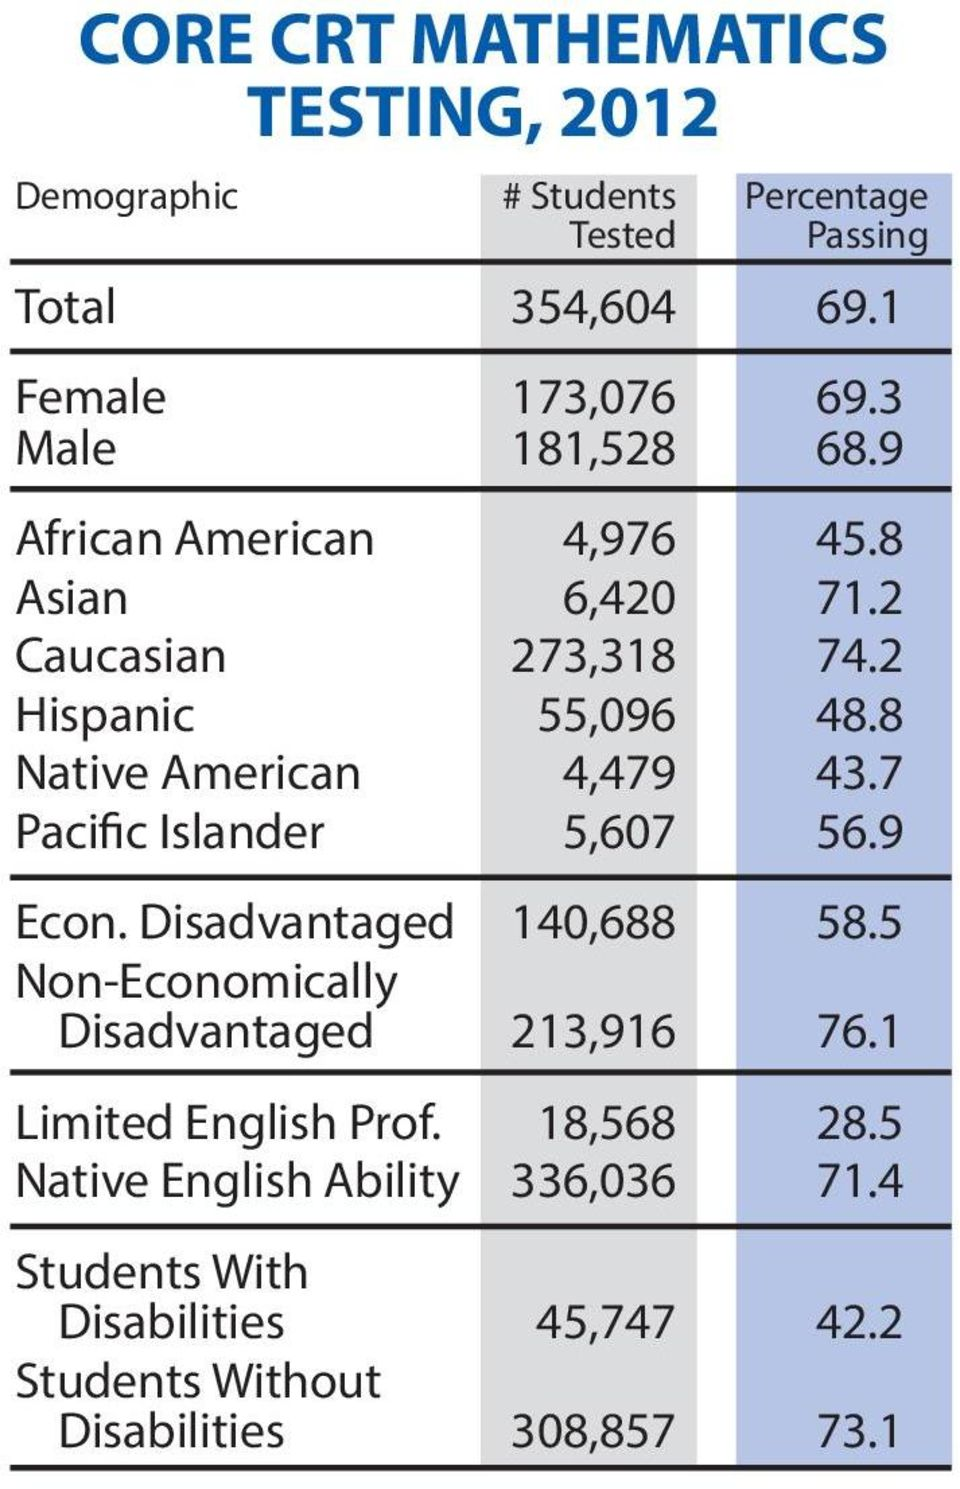 8 Native American 4,479 43.7 Pacific Islander 5,607 56.9 Econ. Disadvantaged 140,688 58.